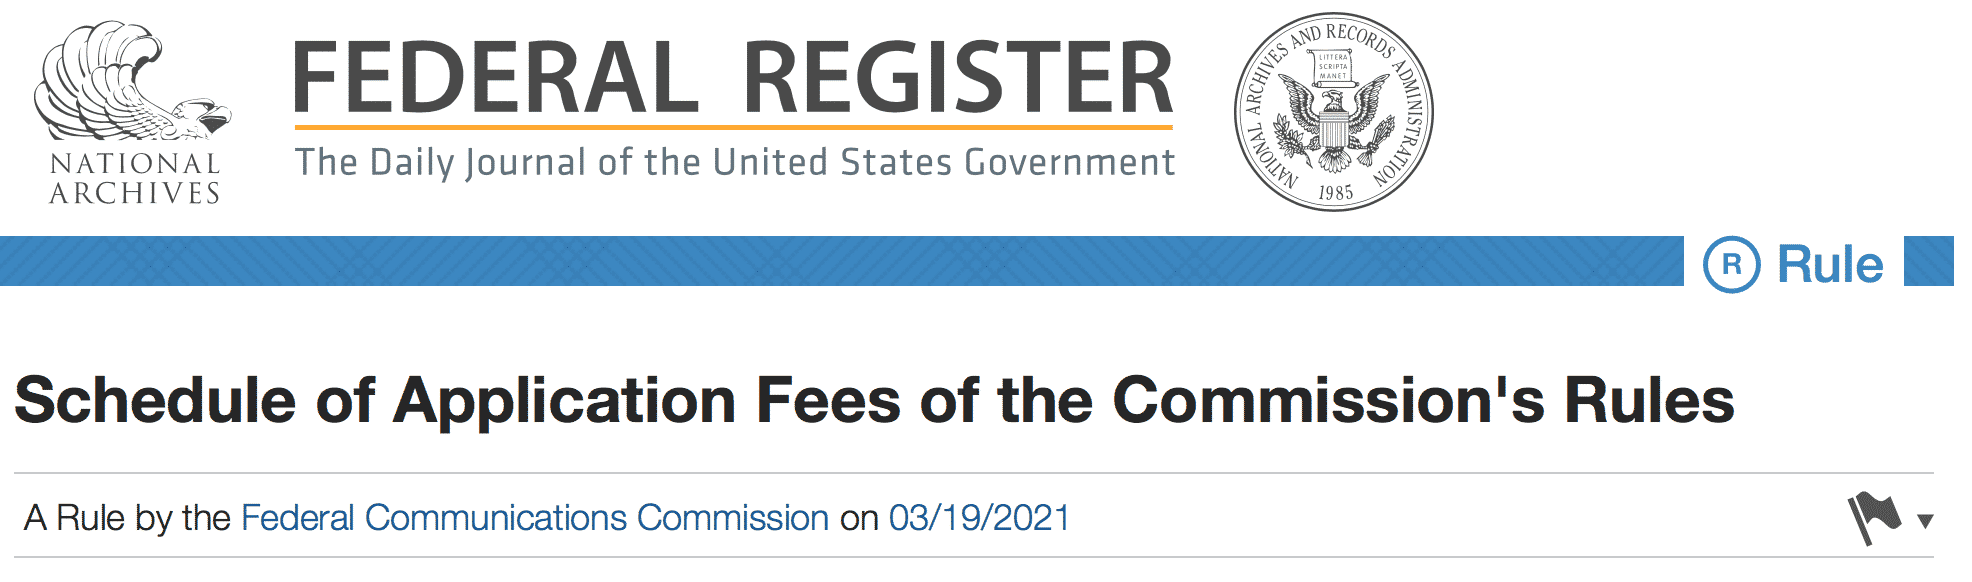 Header Image for FCC Federal Register License Fee Schedule Changes for March 19th 2021 Article